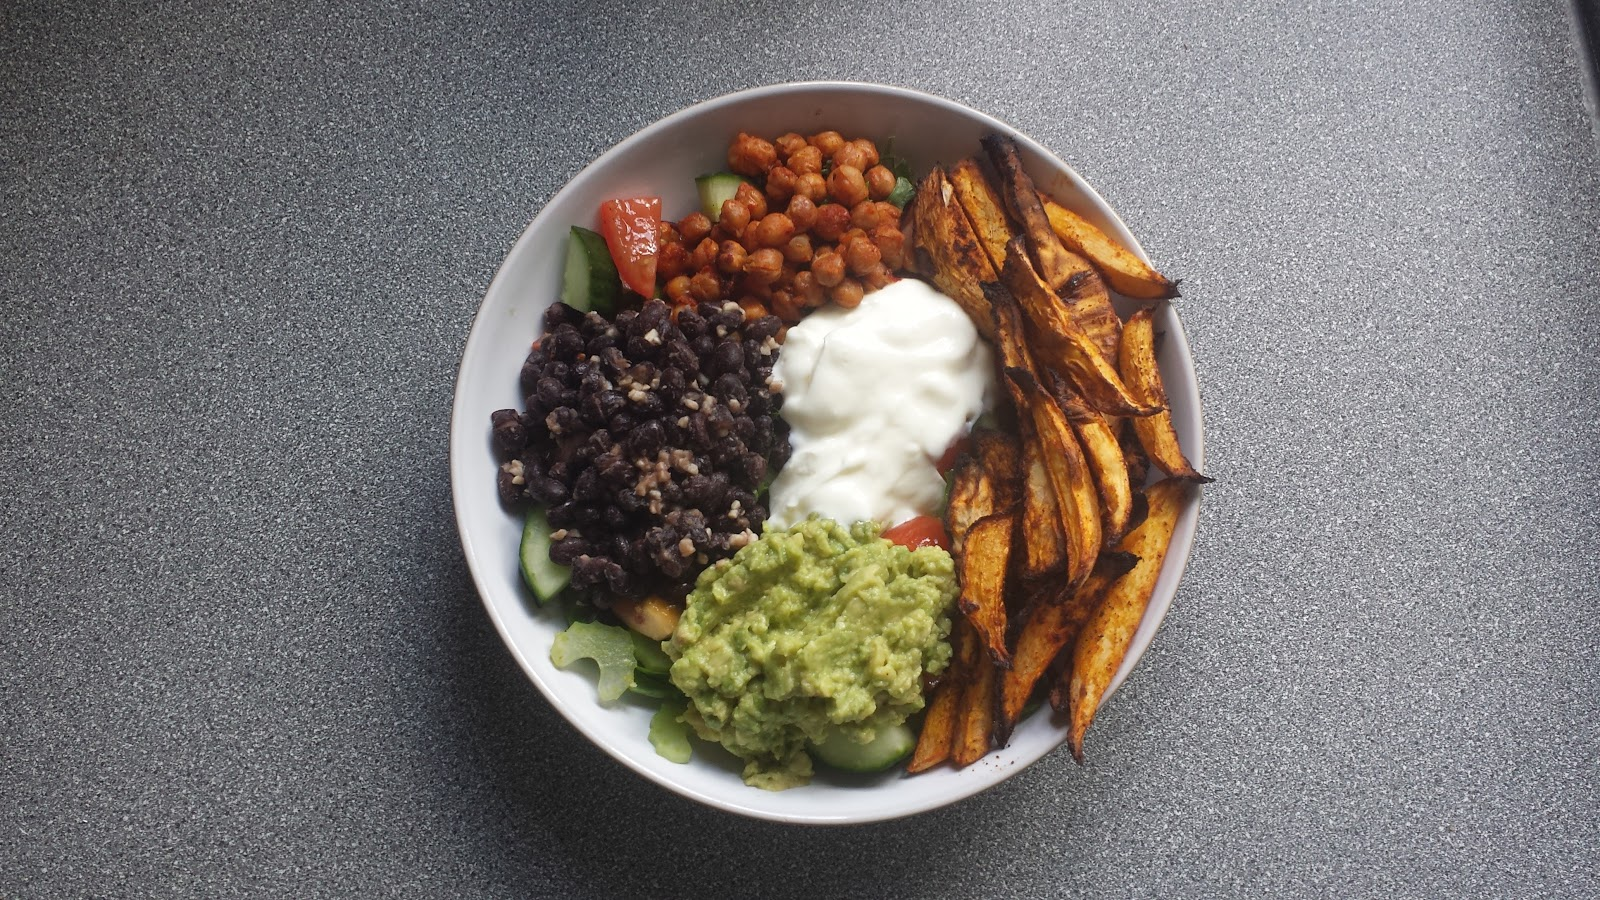 Swede Fries, Guacamole, Chickpeas and Garlic Black Beans